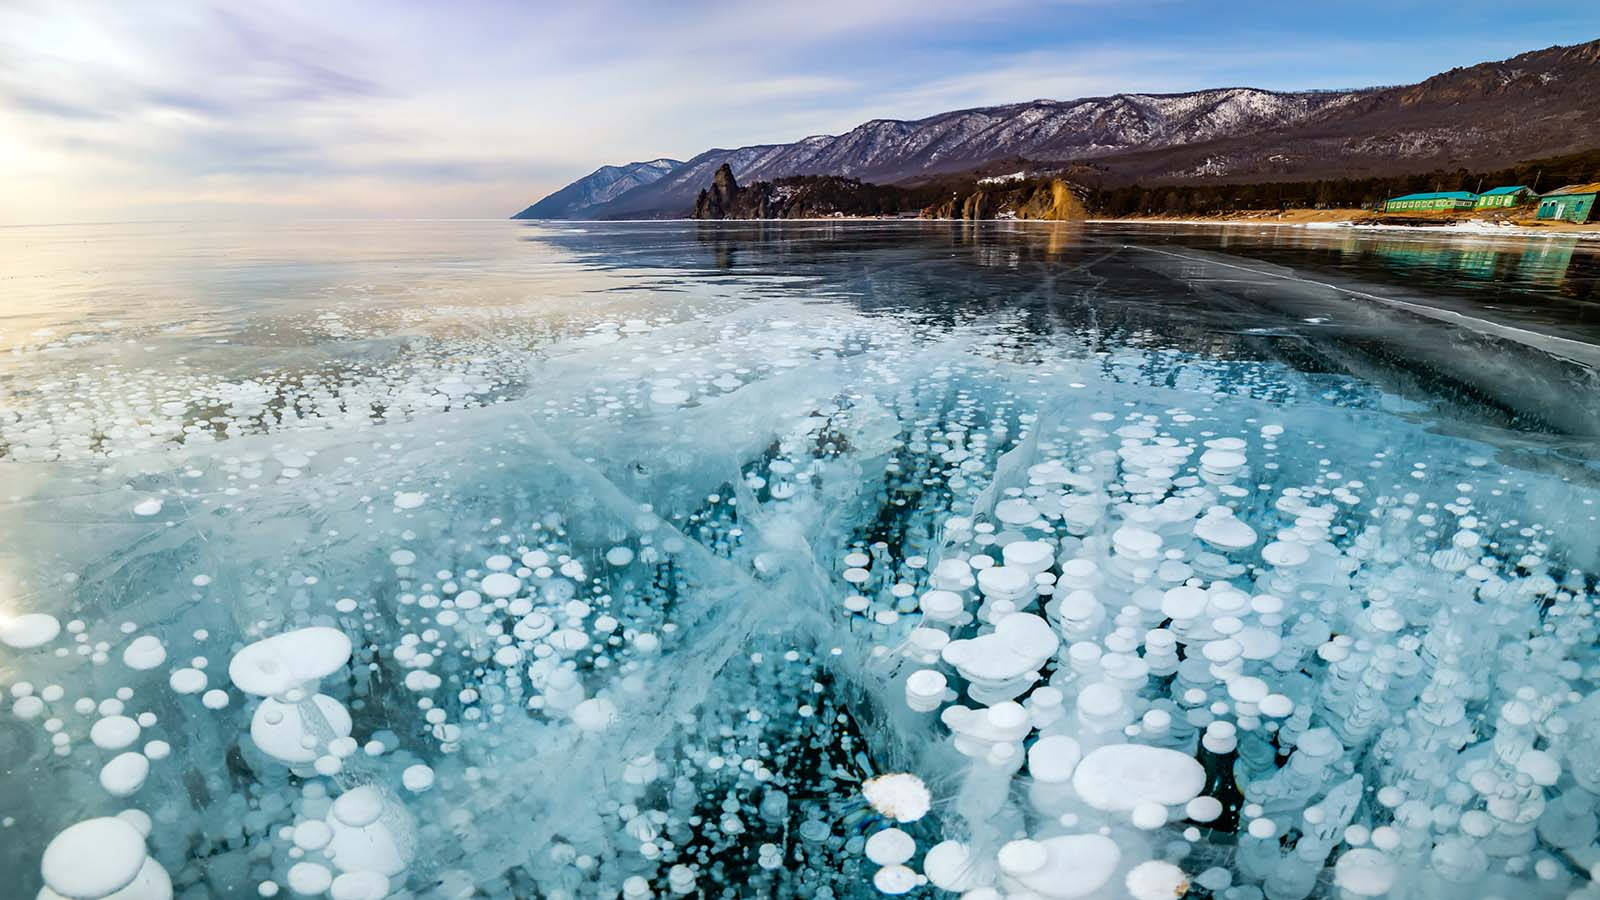 Siberia's Lake Baikal Is the World's Oldest and Weirdest | HowStuffWorks